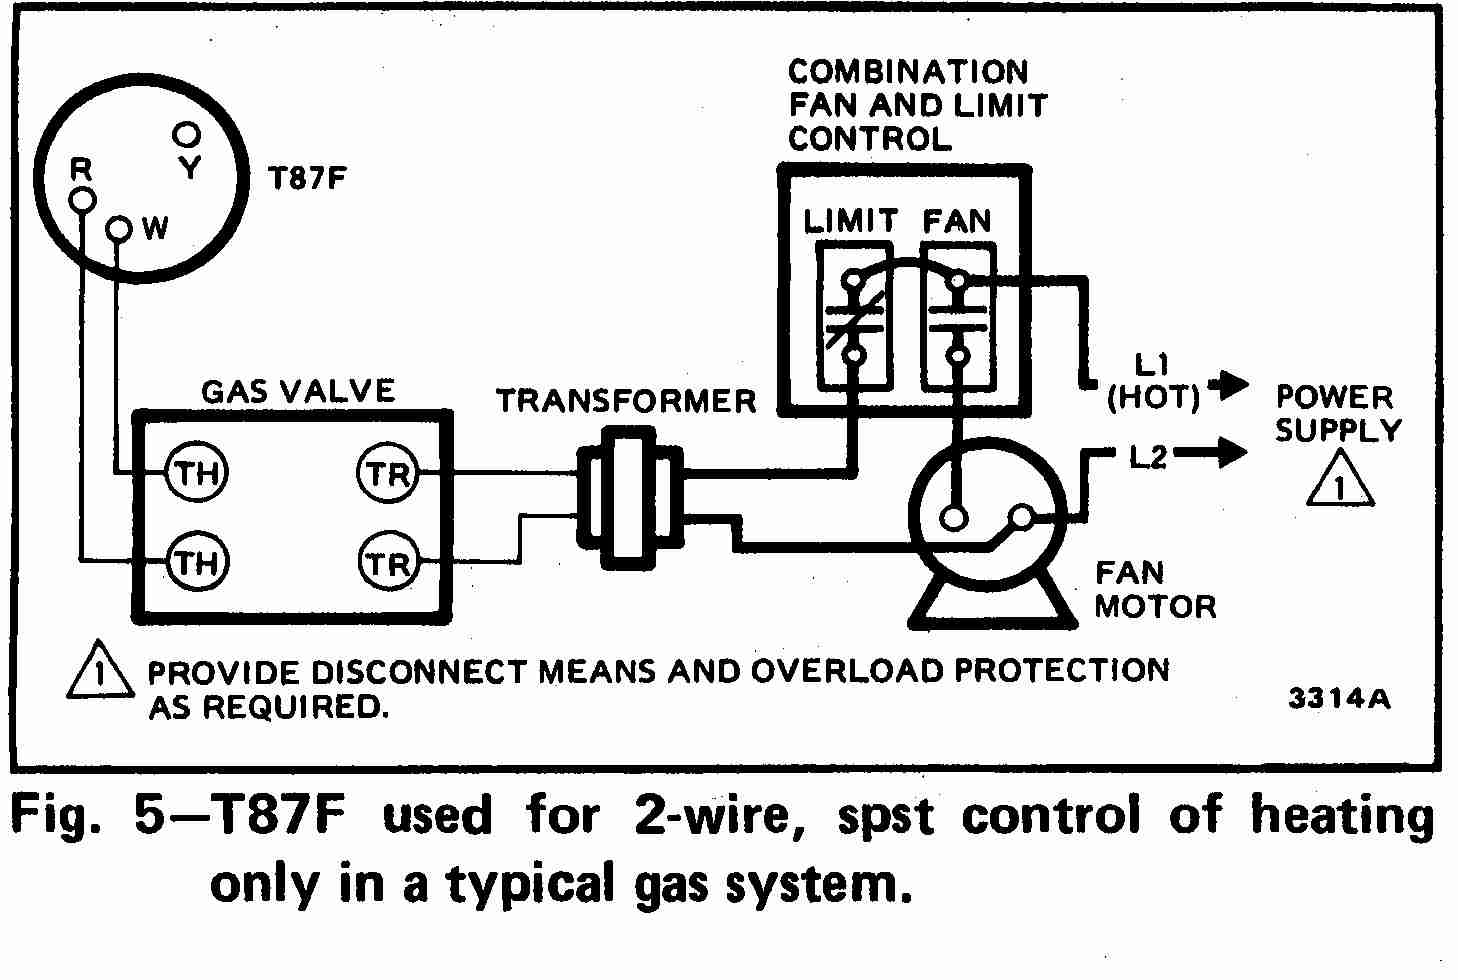 TT_T87F_0002_2Wg_DJF guide to wiring connections for room thermostats Honeywell Thermostat Wiring Diagram at n-0.co